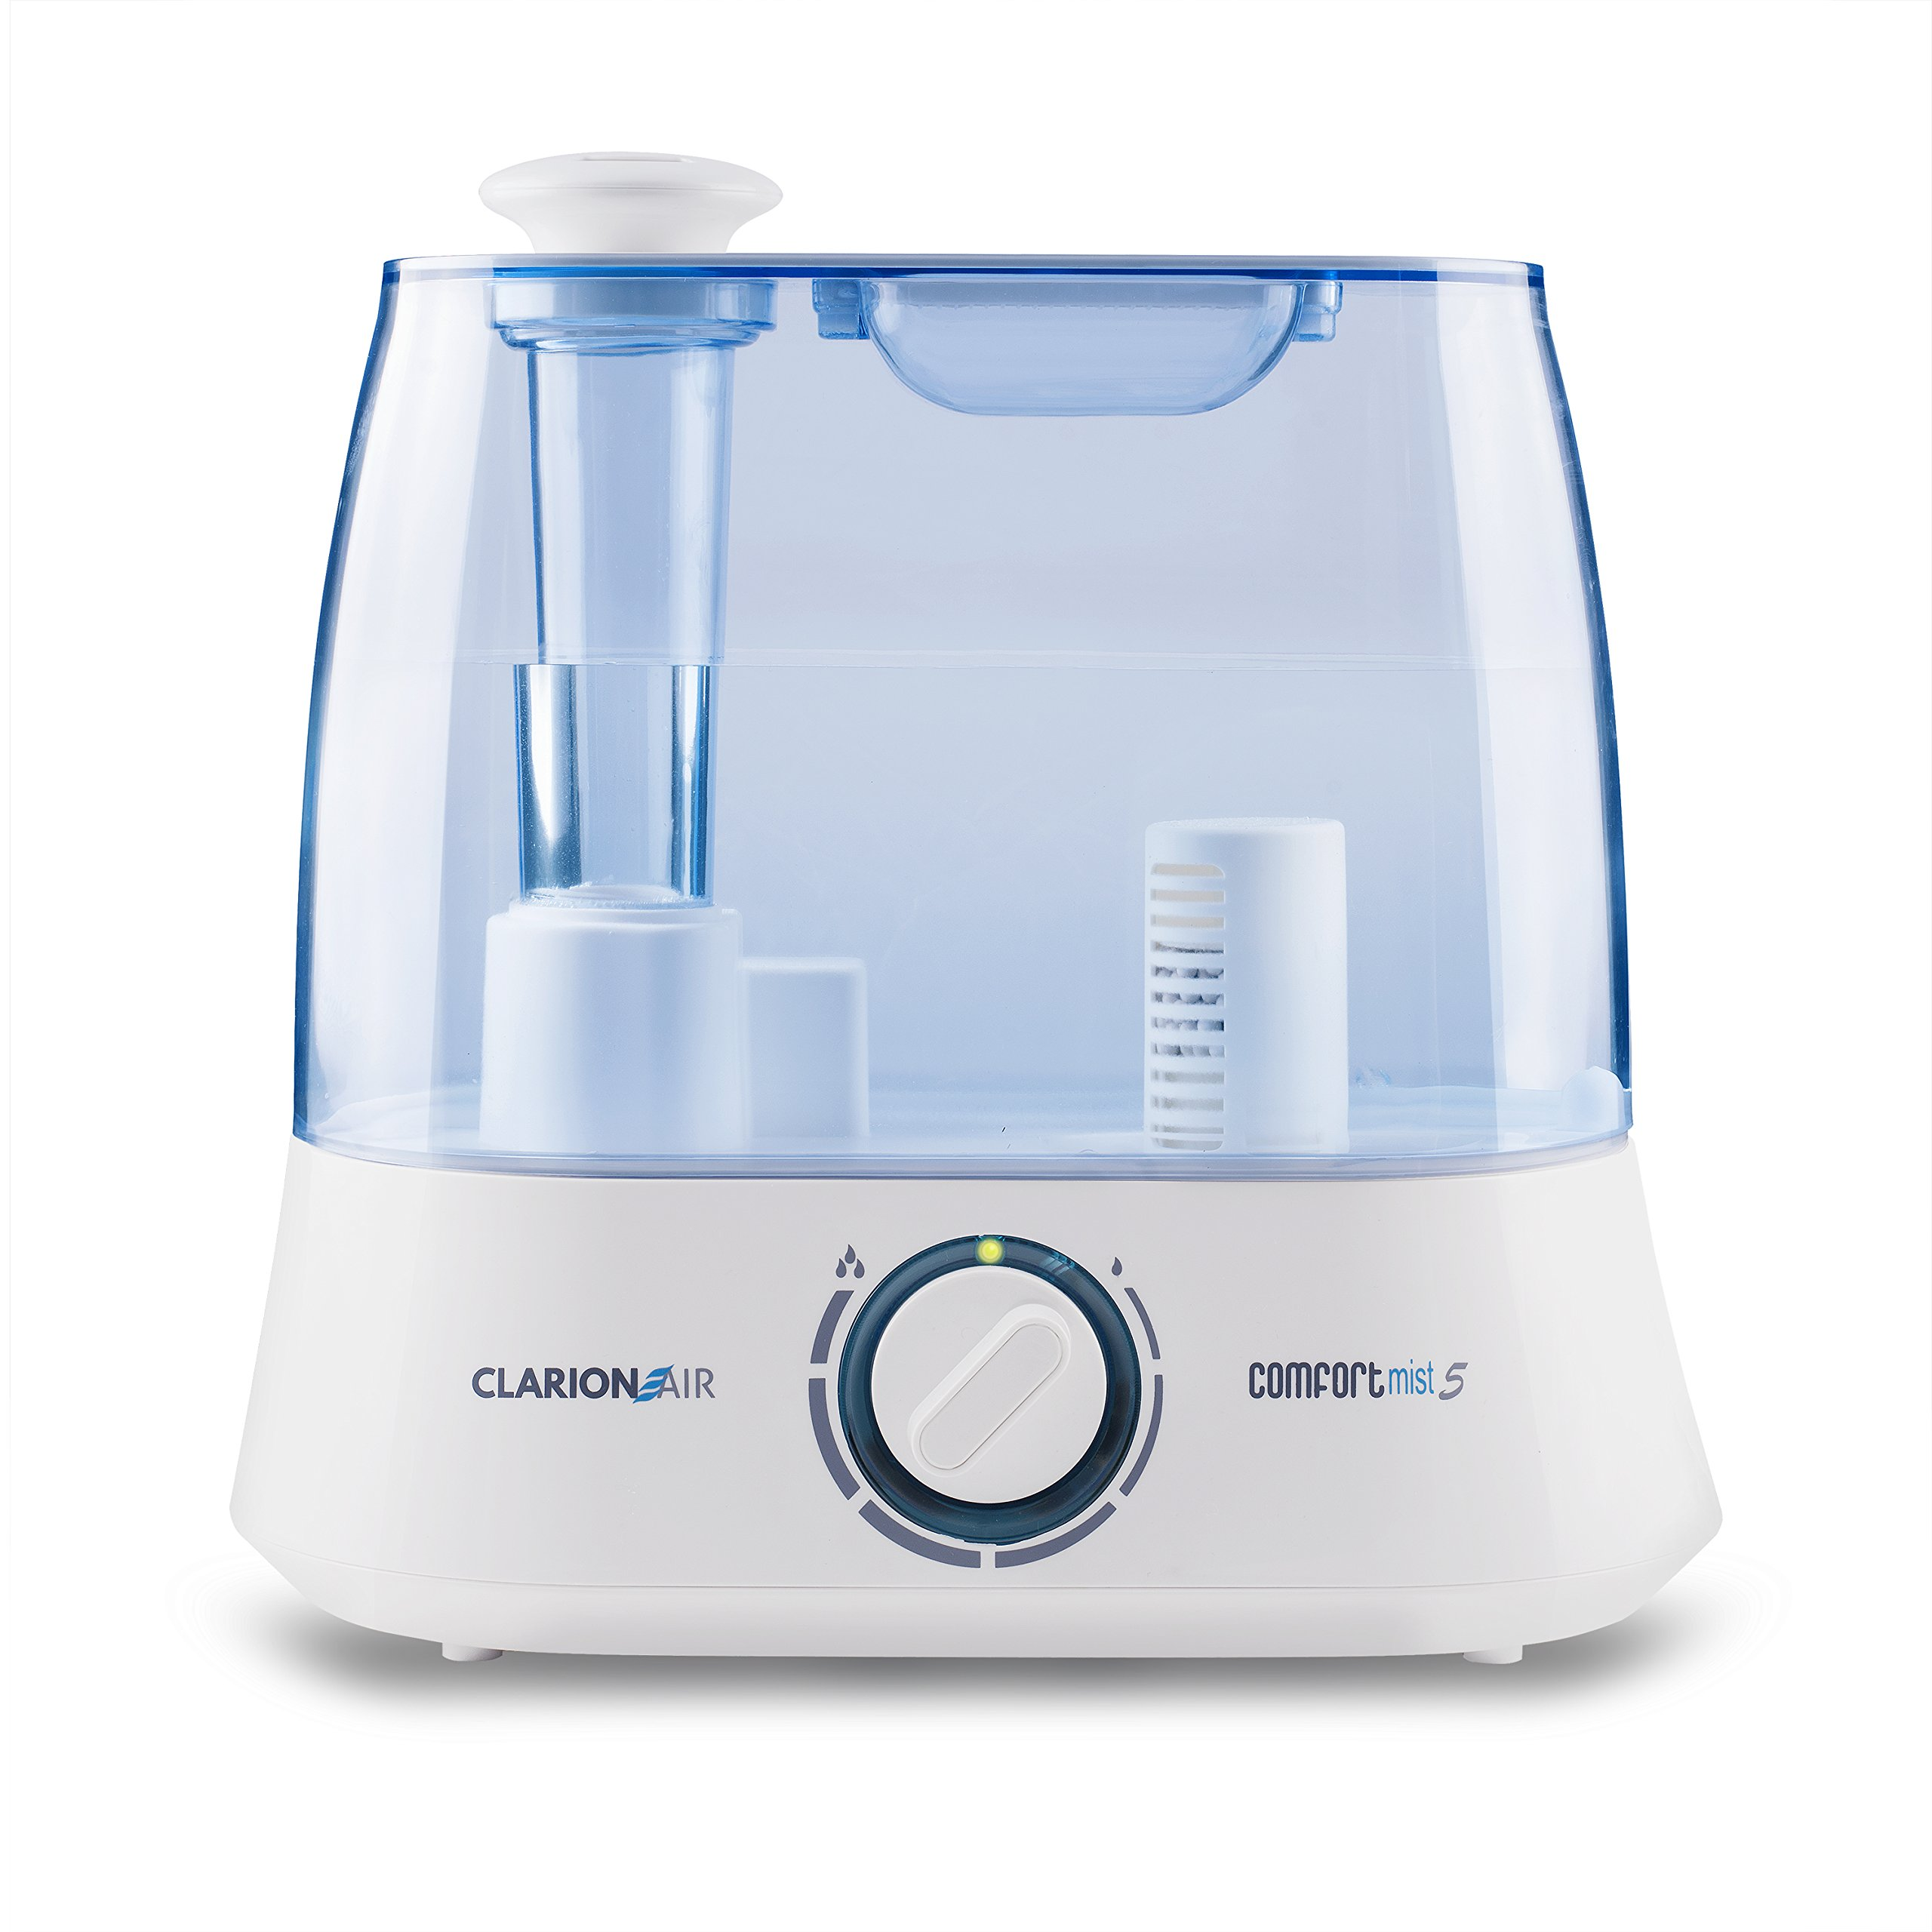 Ultrasonic Cool Mist Humidifier ~ Super Quiet Air Moisturizer with 1.3 Gallon Tank (5.2 Liters), Custom Controls, Automatic Shutoff + 2 Demineralization Cartridges (1 Inside, 1 Extra) by Clarion Air by Clarion Air